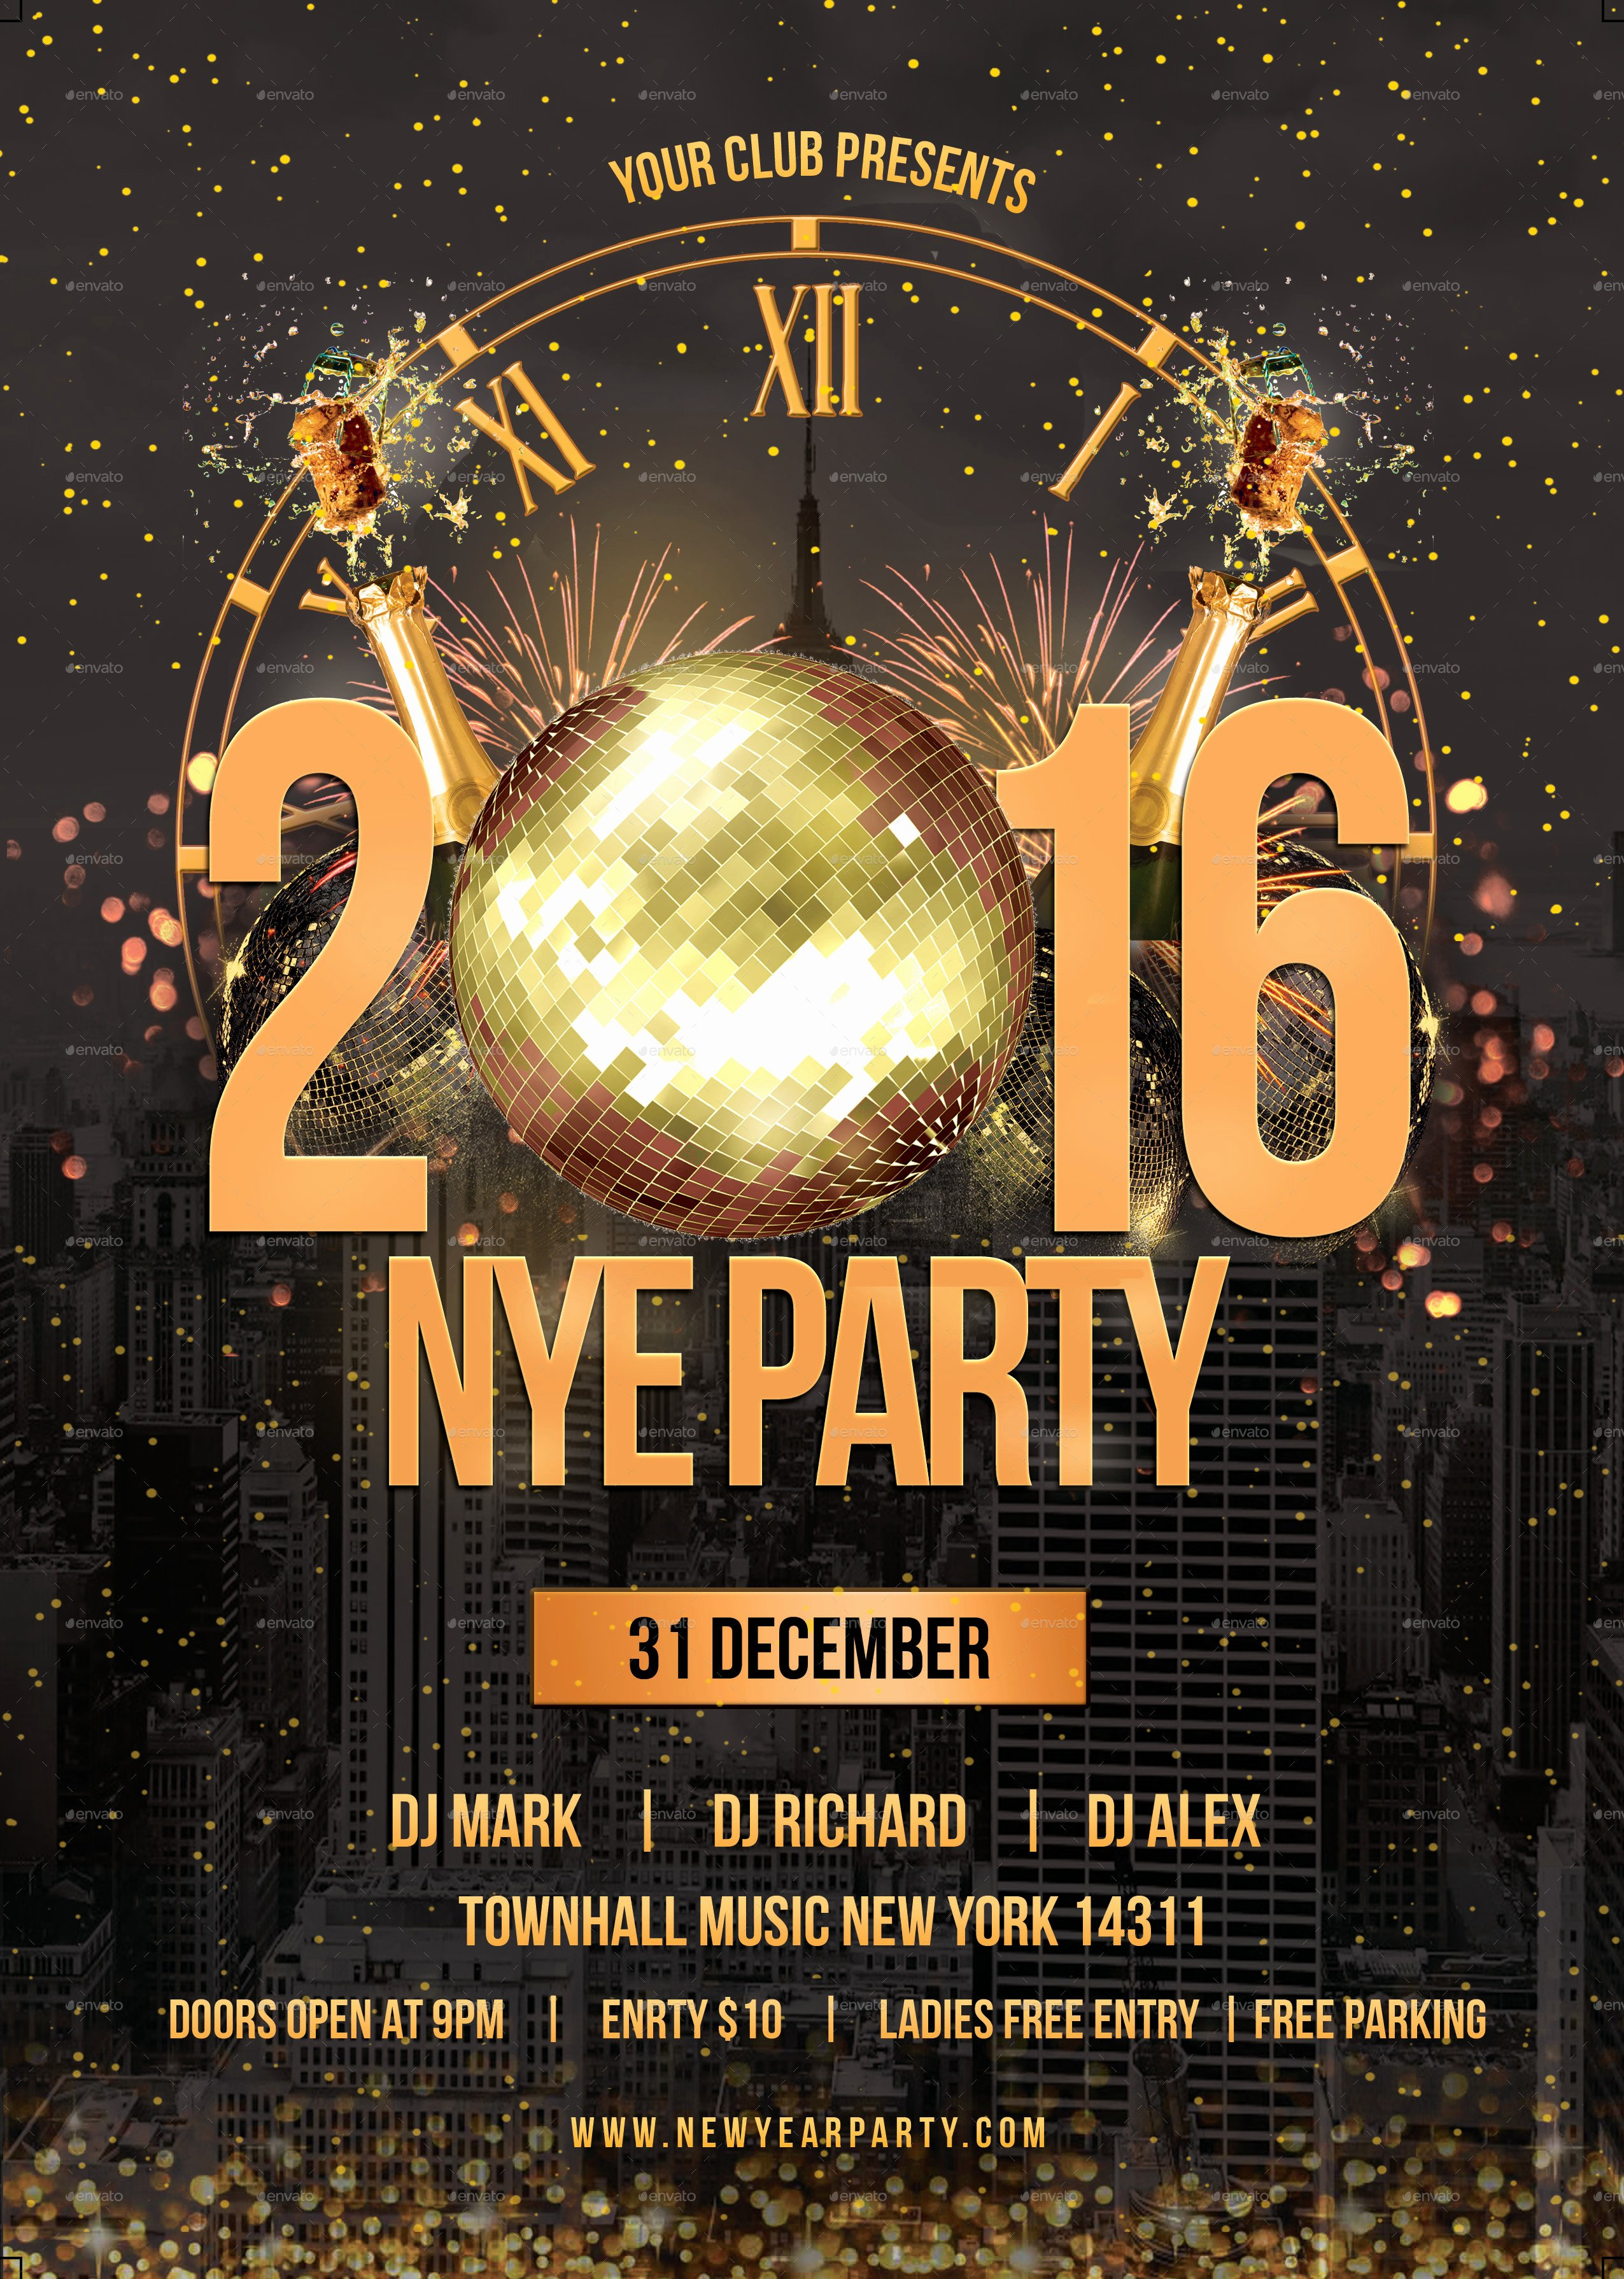 New Year Flyer Template Best Of New Year Party Flyer by Infinite